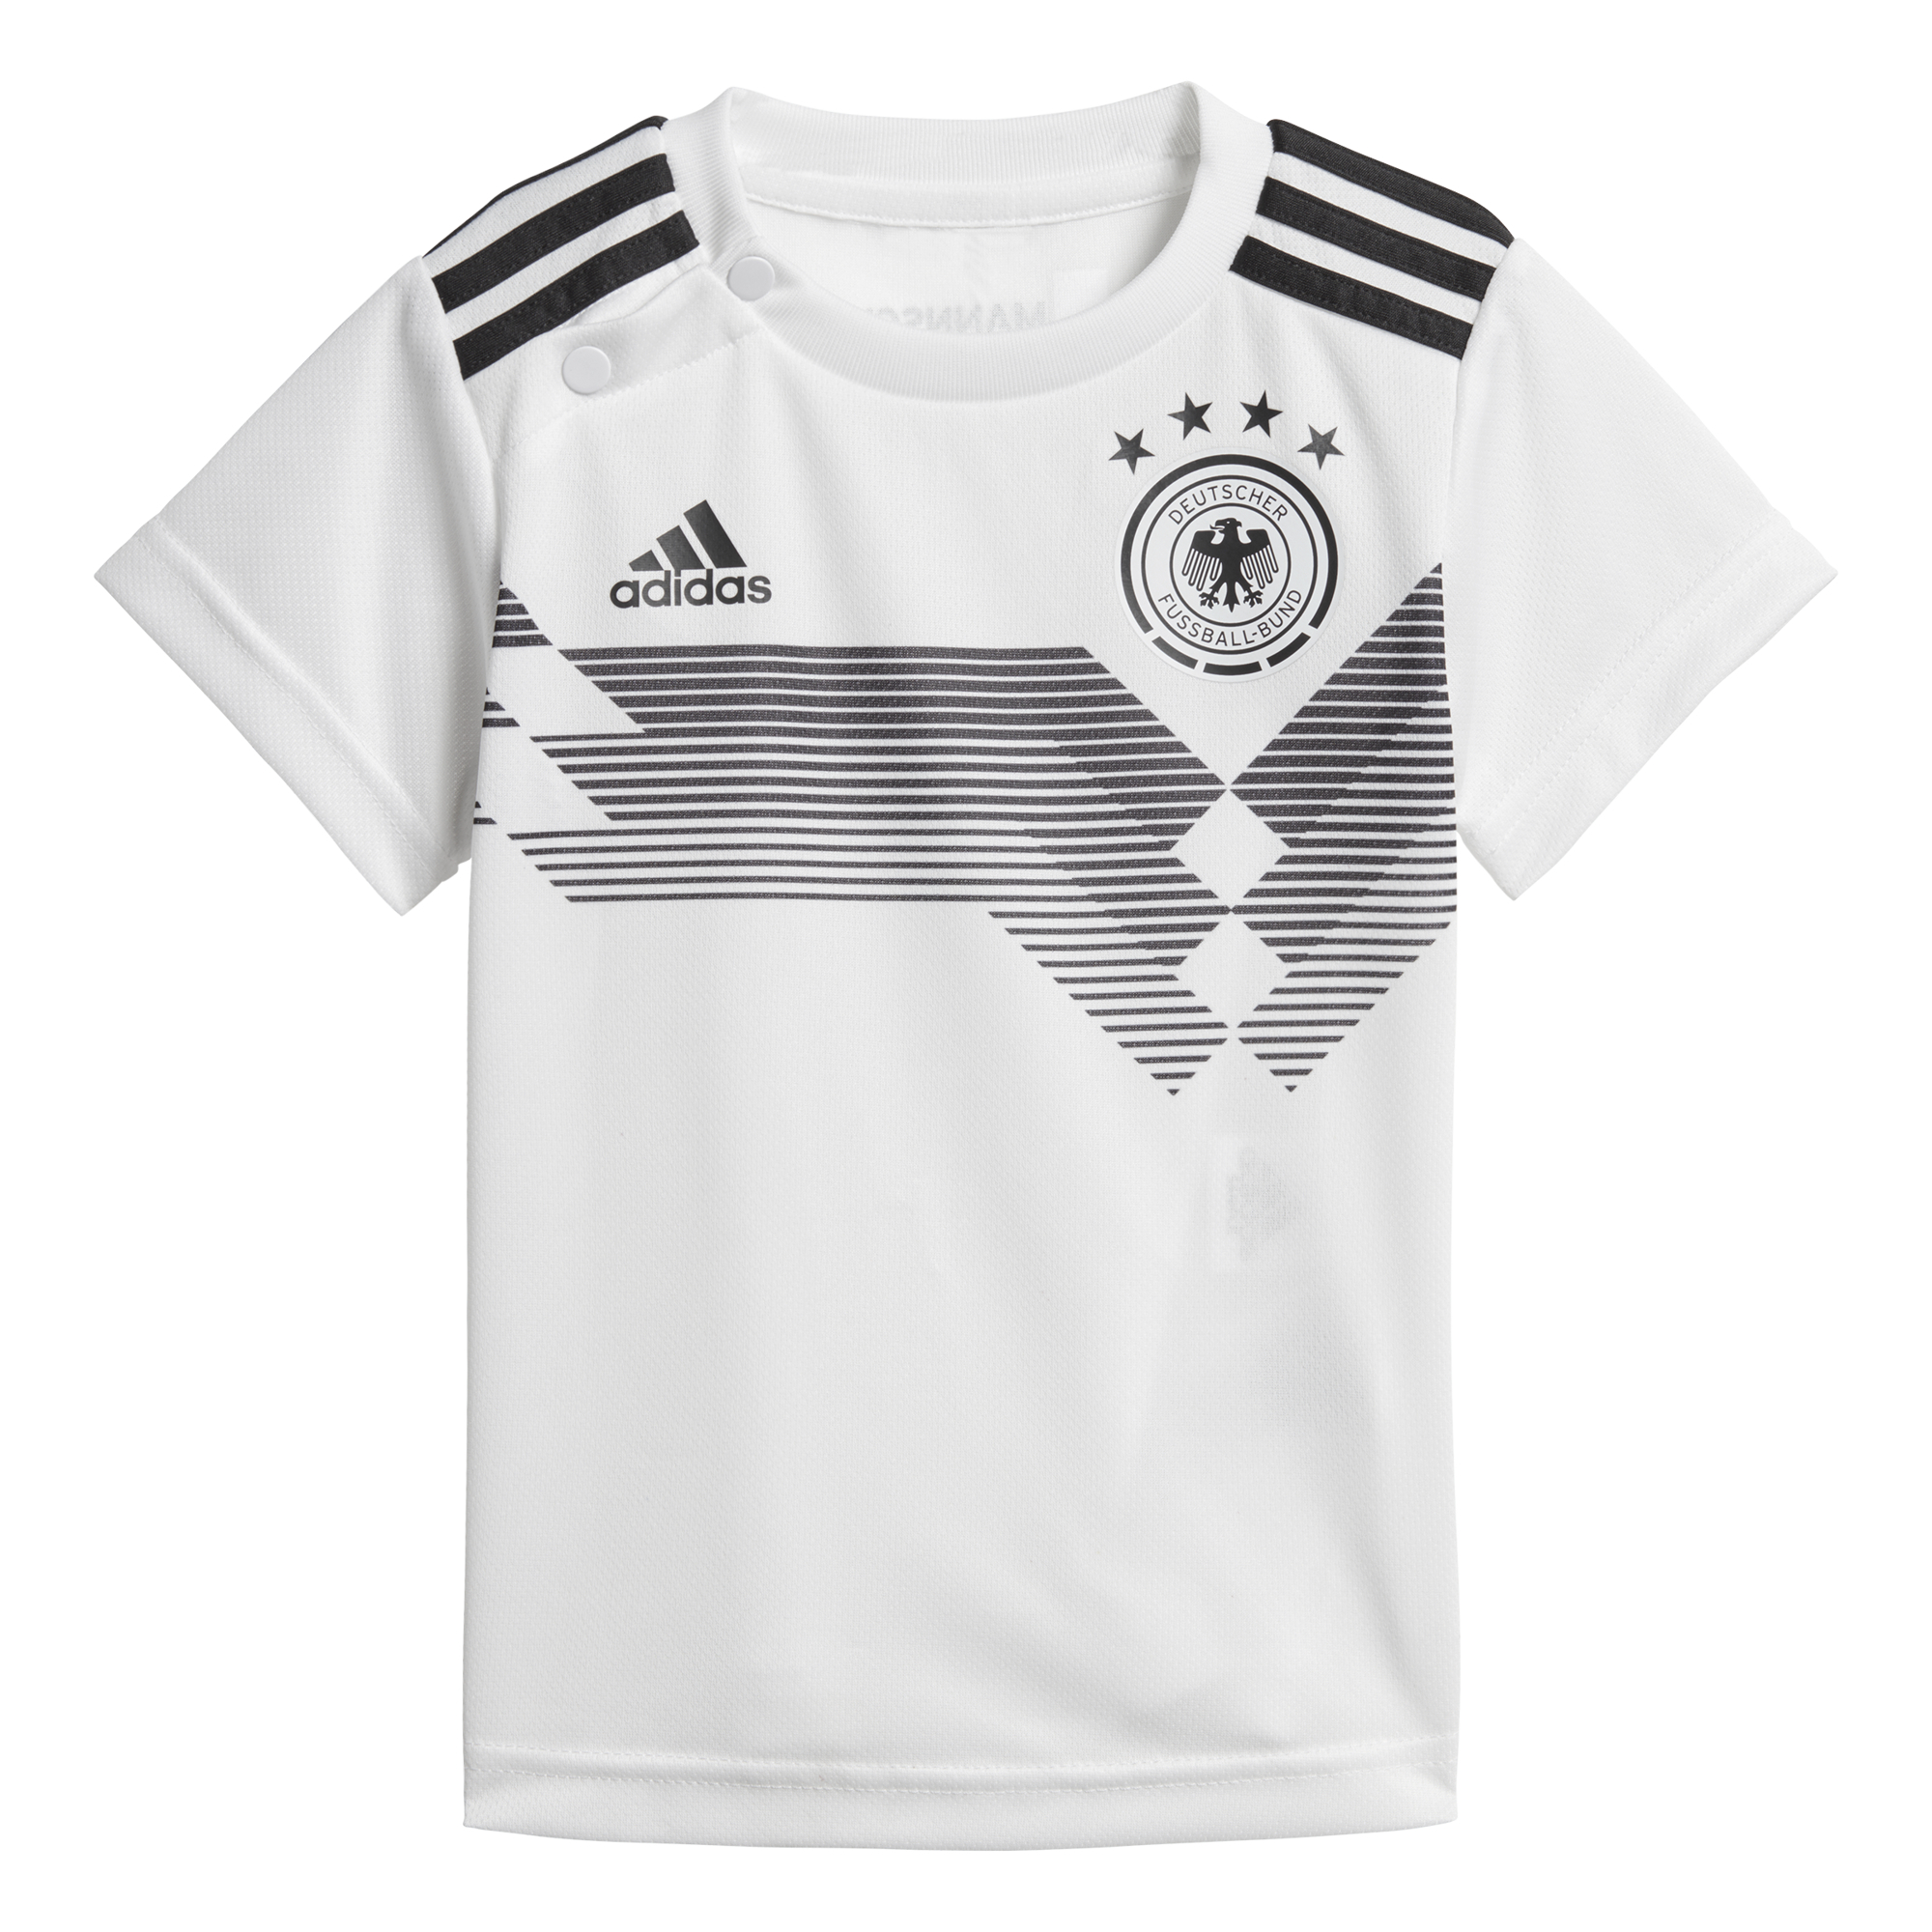 adidas deutschland trikot dfb baby kit wm 2018 baby. Black Bedroom Furniture Sets. Home Design Ideas